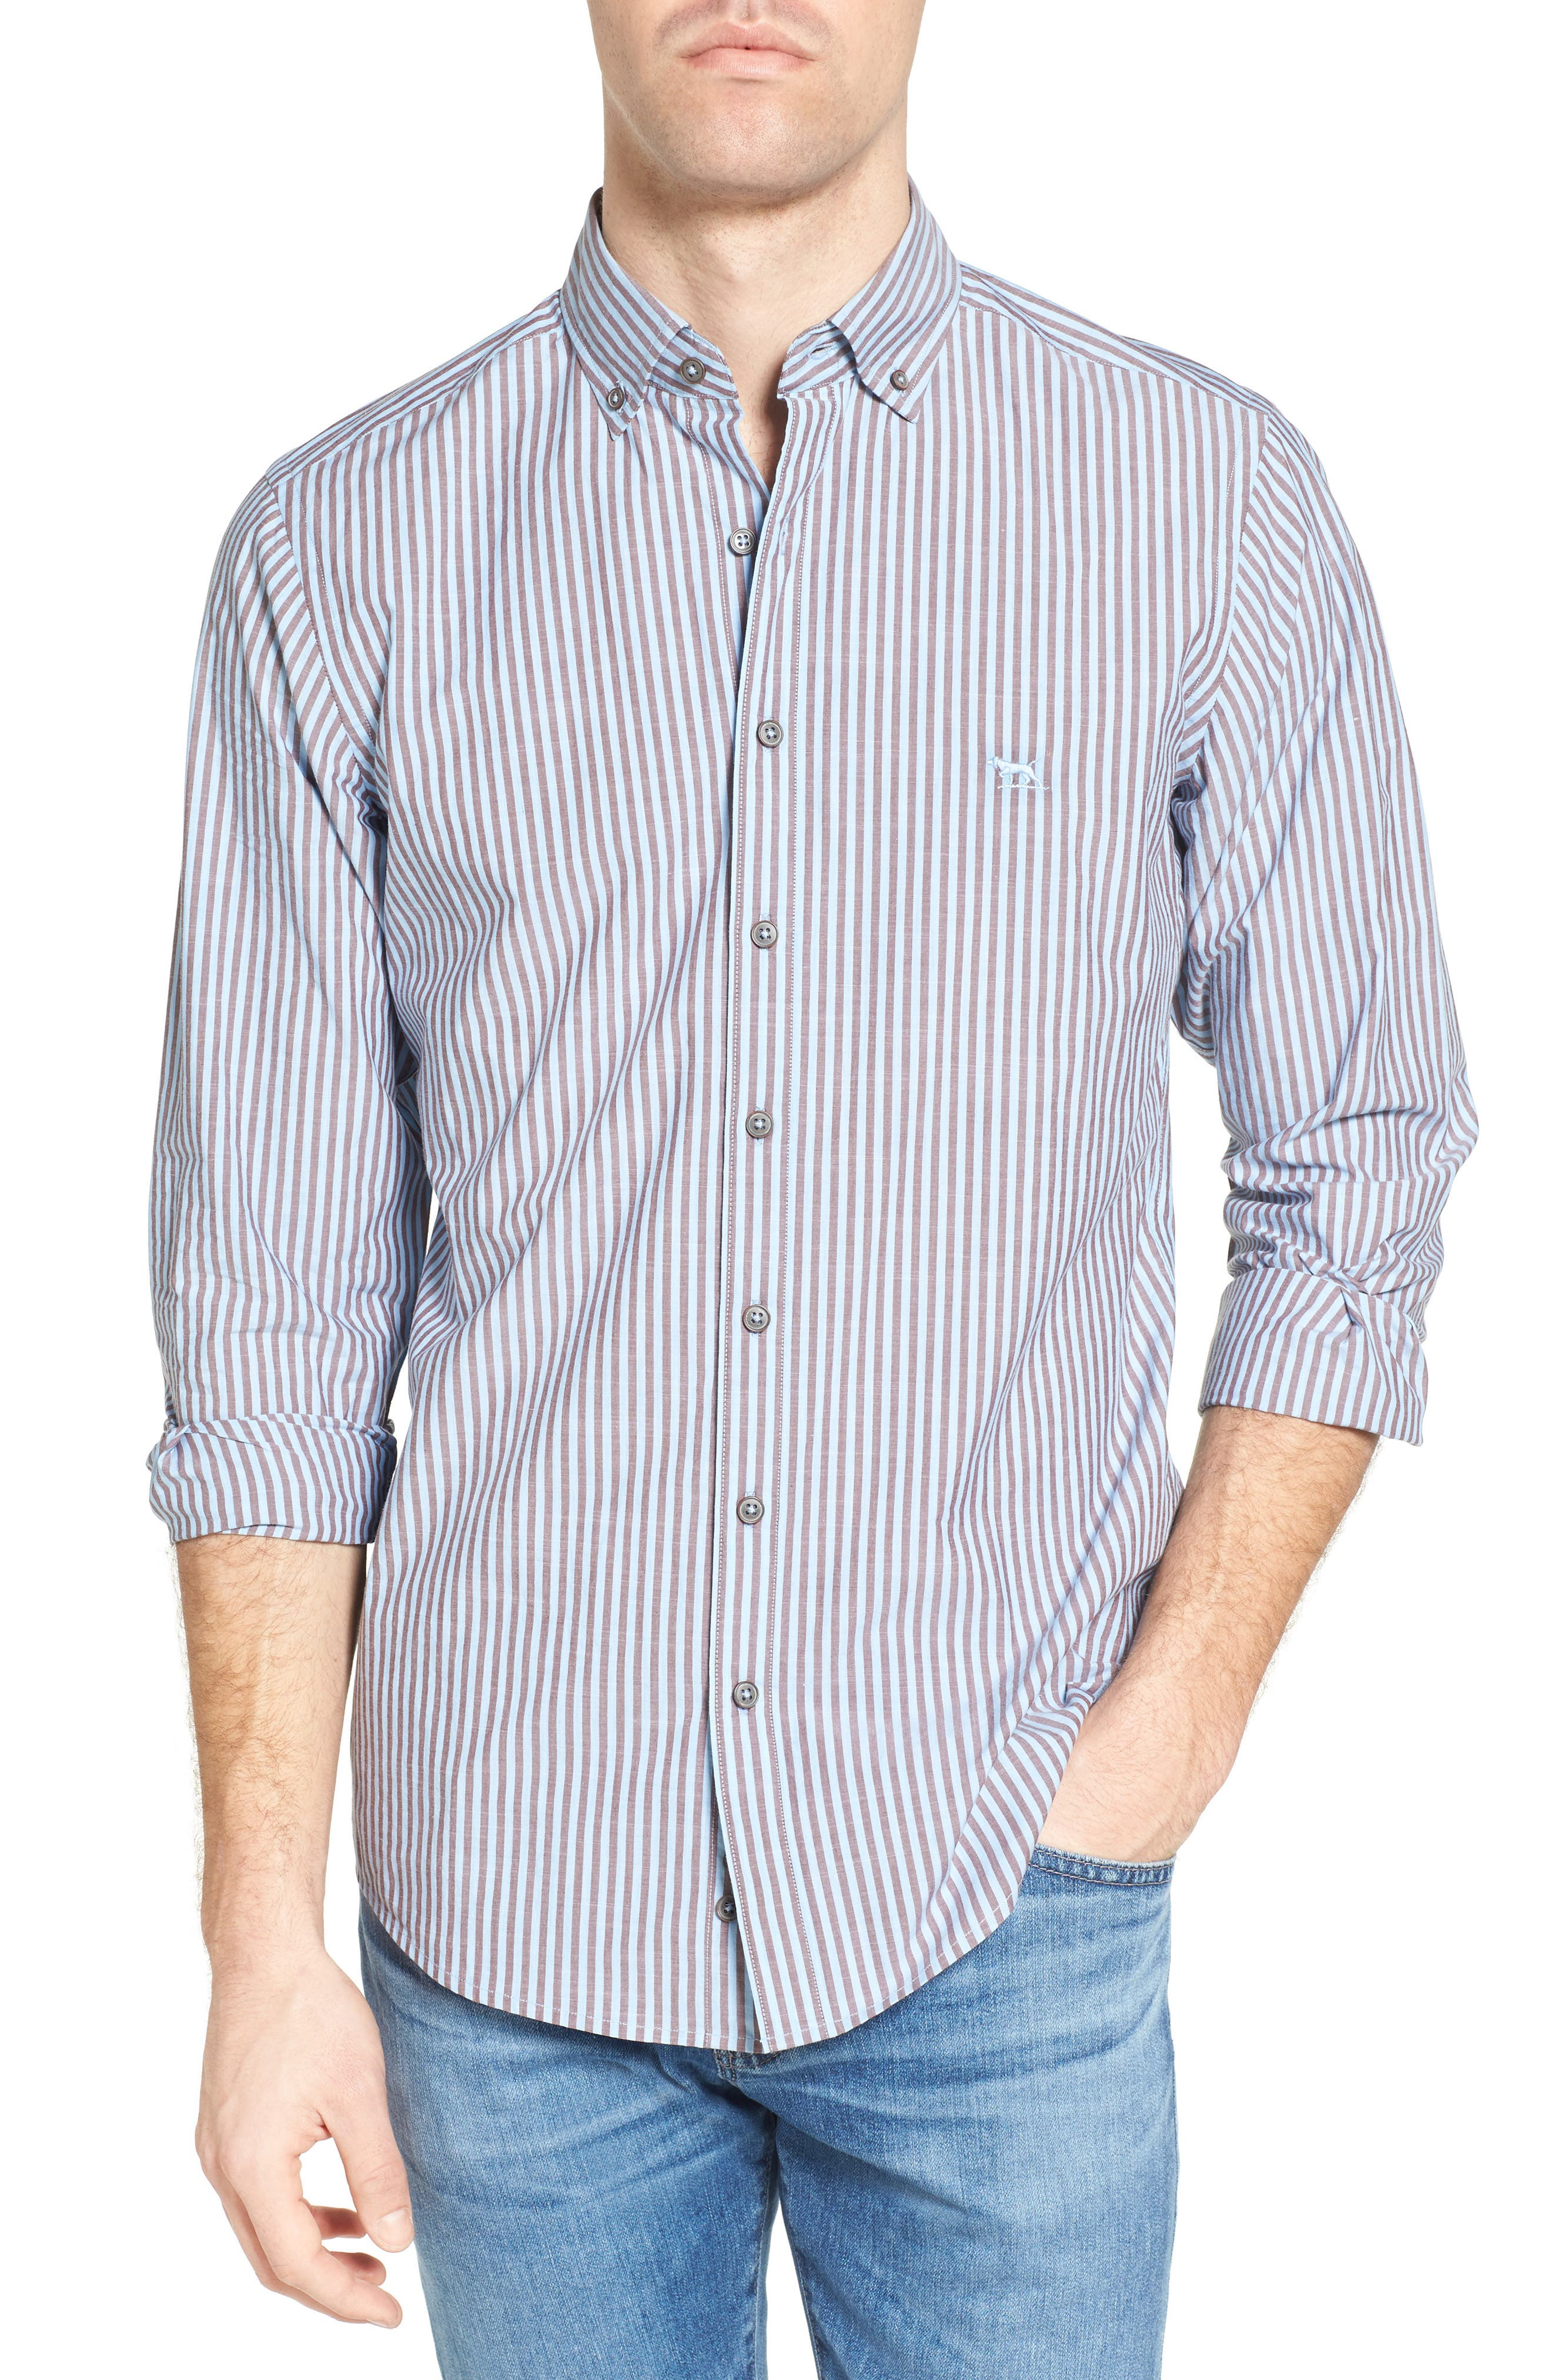 Fitzroy Stripe Sport Shirt,                             Main thumbnail 1, color,                             Sky